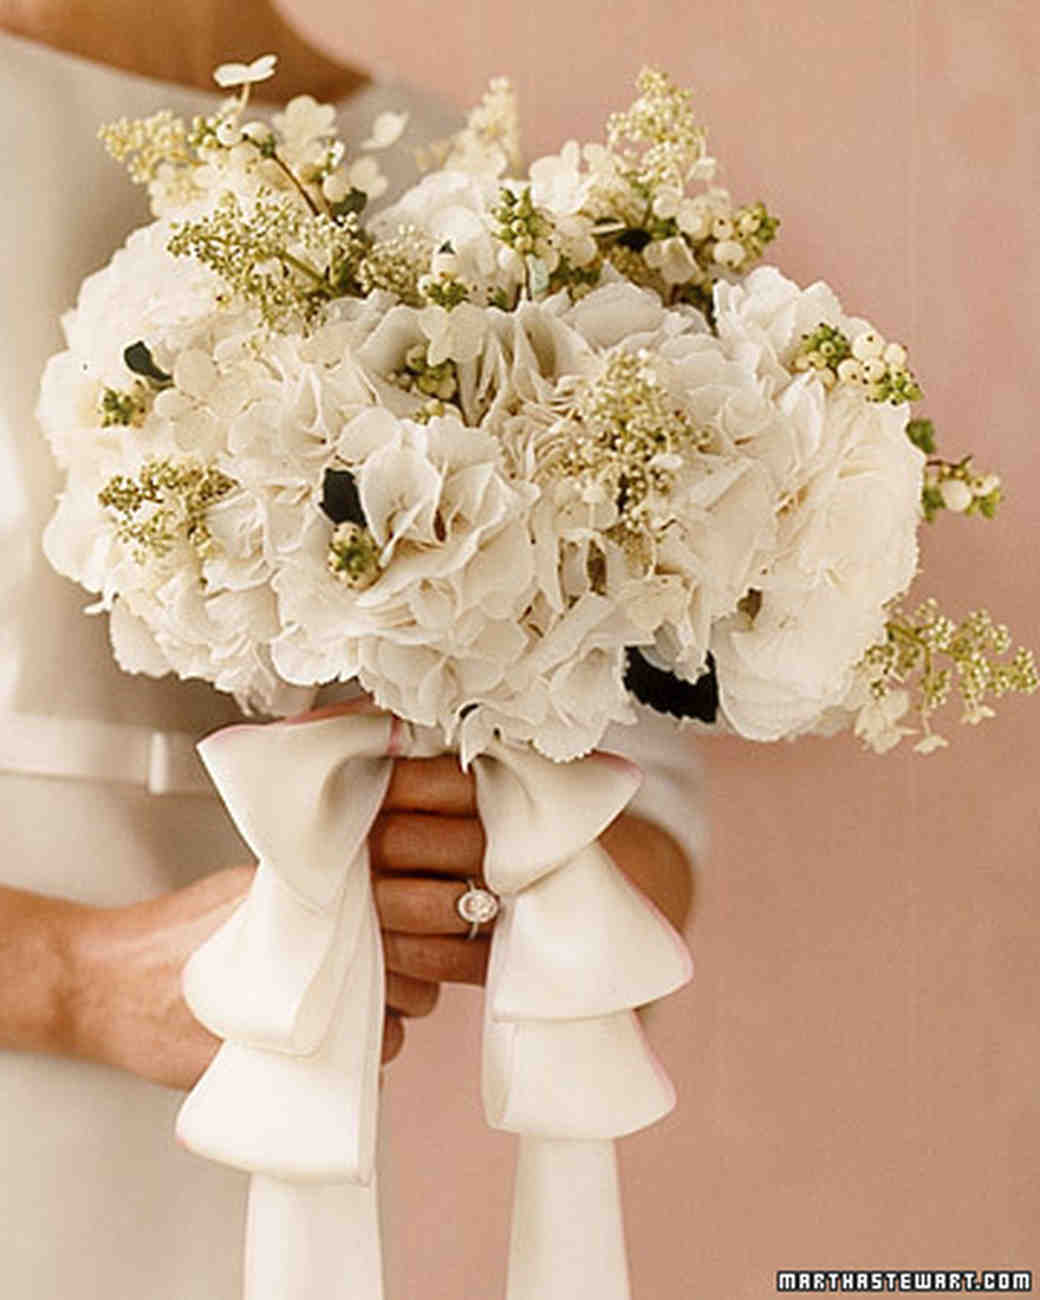 Wedding Flower Arrangements: Hydrangea Wedding Flower Arrangements